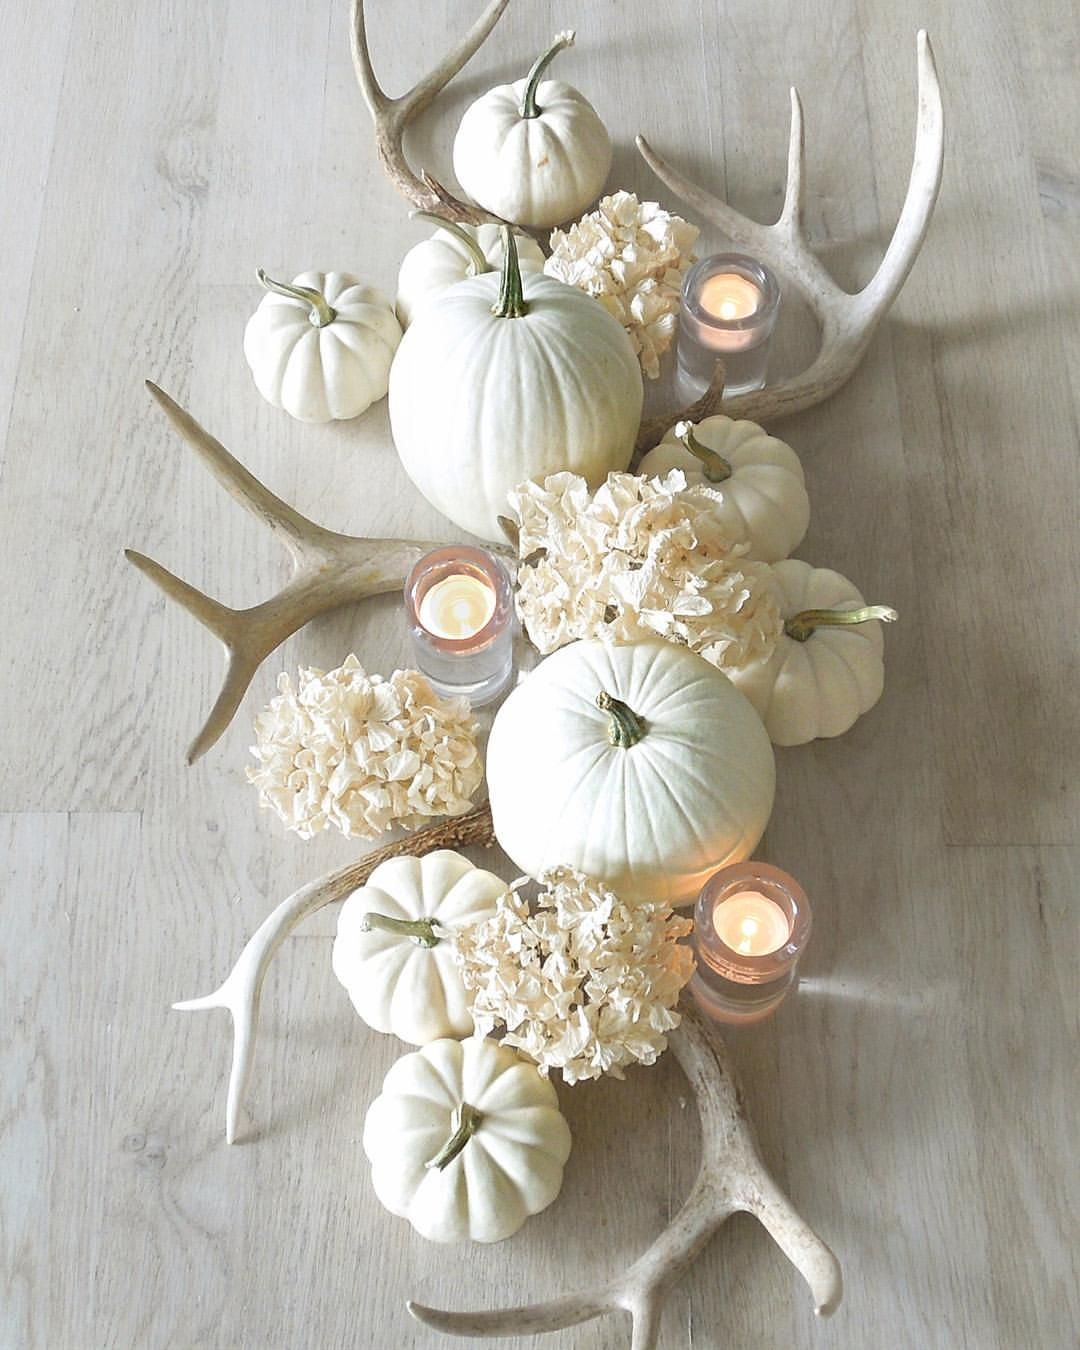 white pumpkins + antlers + hydrangeas decoration Pinterest - Halloween Table Decorations Pinterest